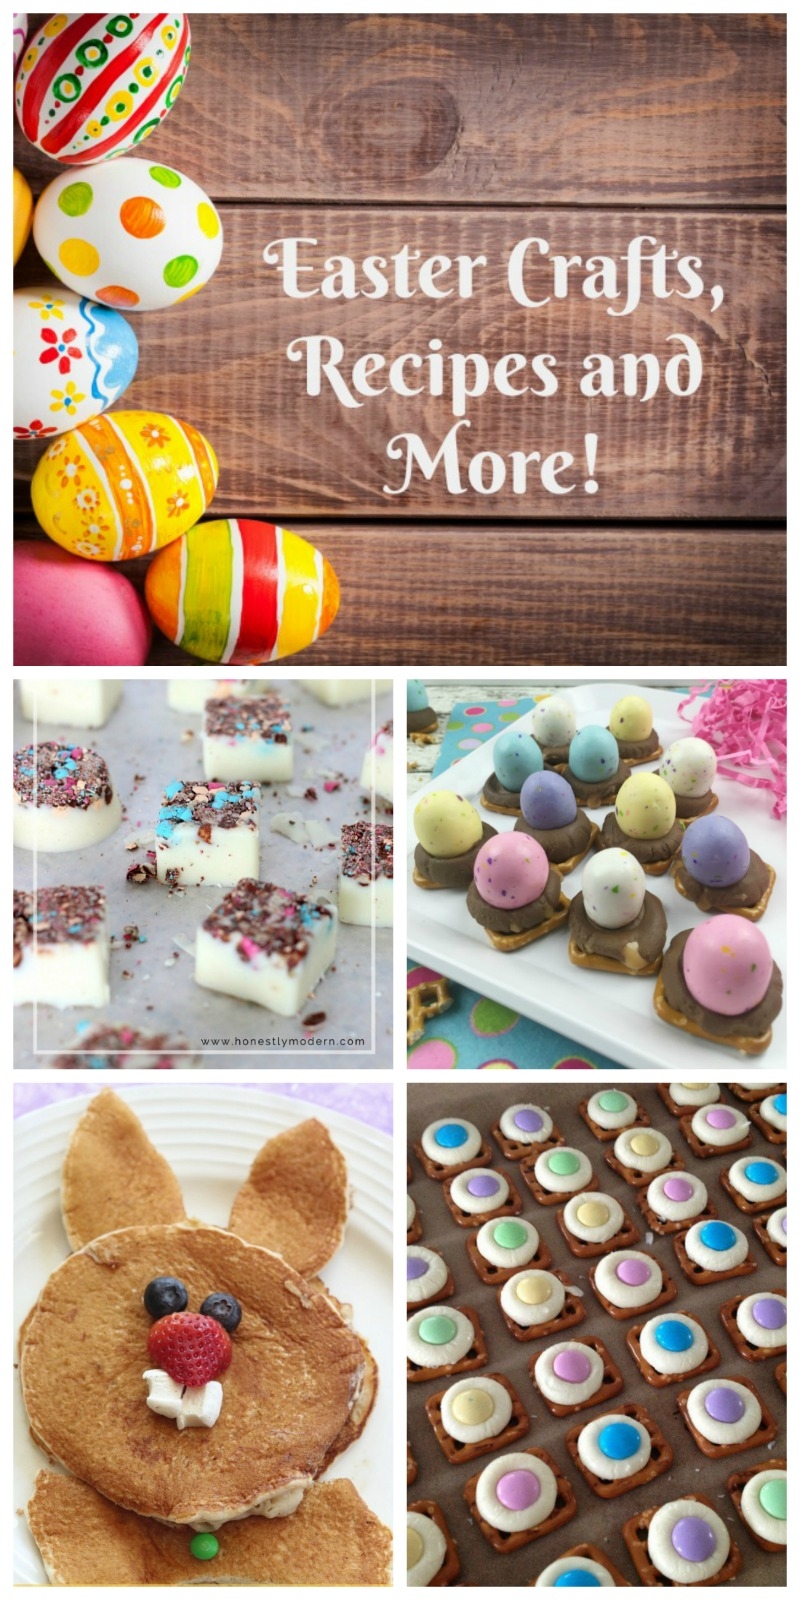 Easter Crafts, Recipes and more! Everything you need to make your Easter easy and memorable!